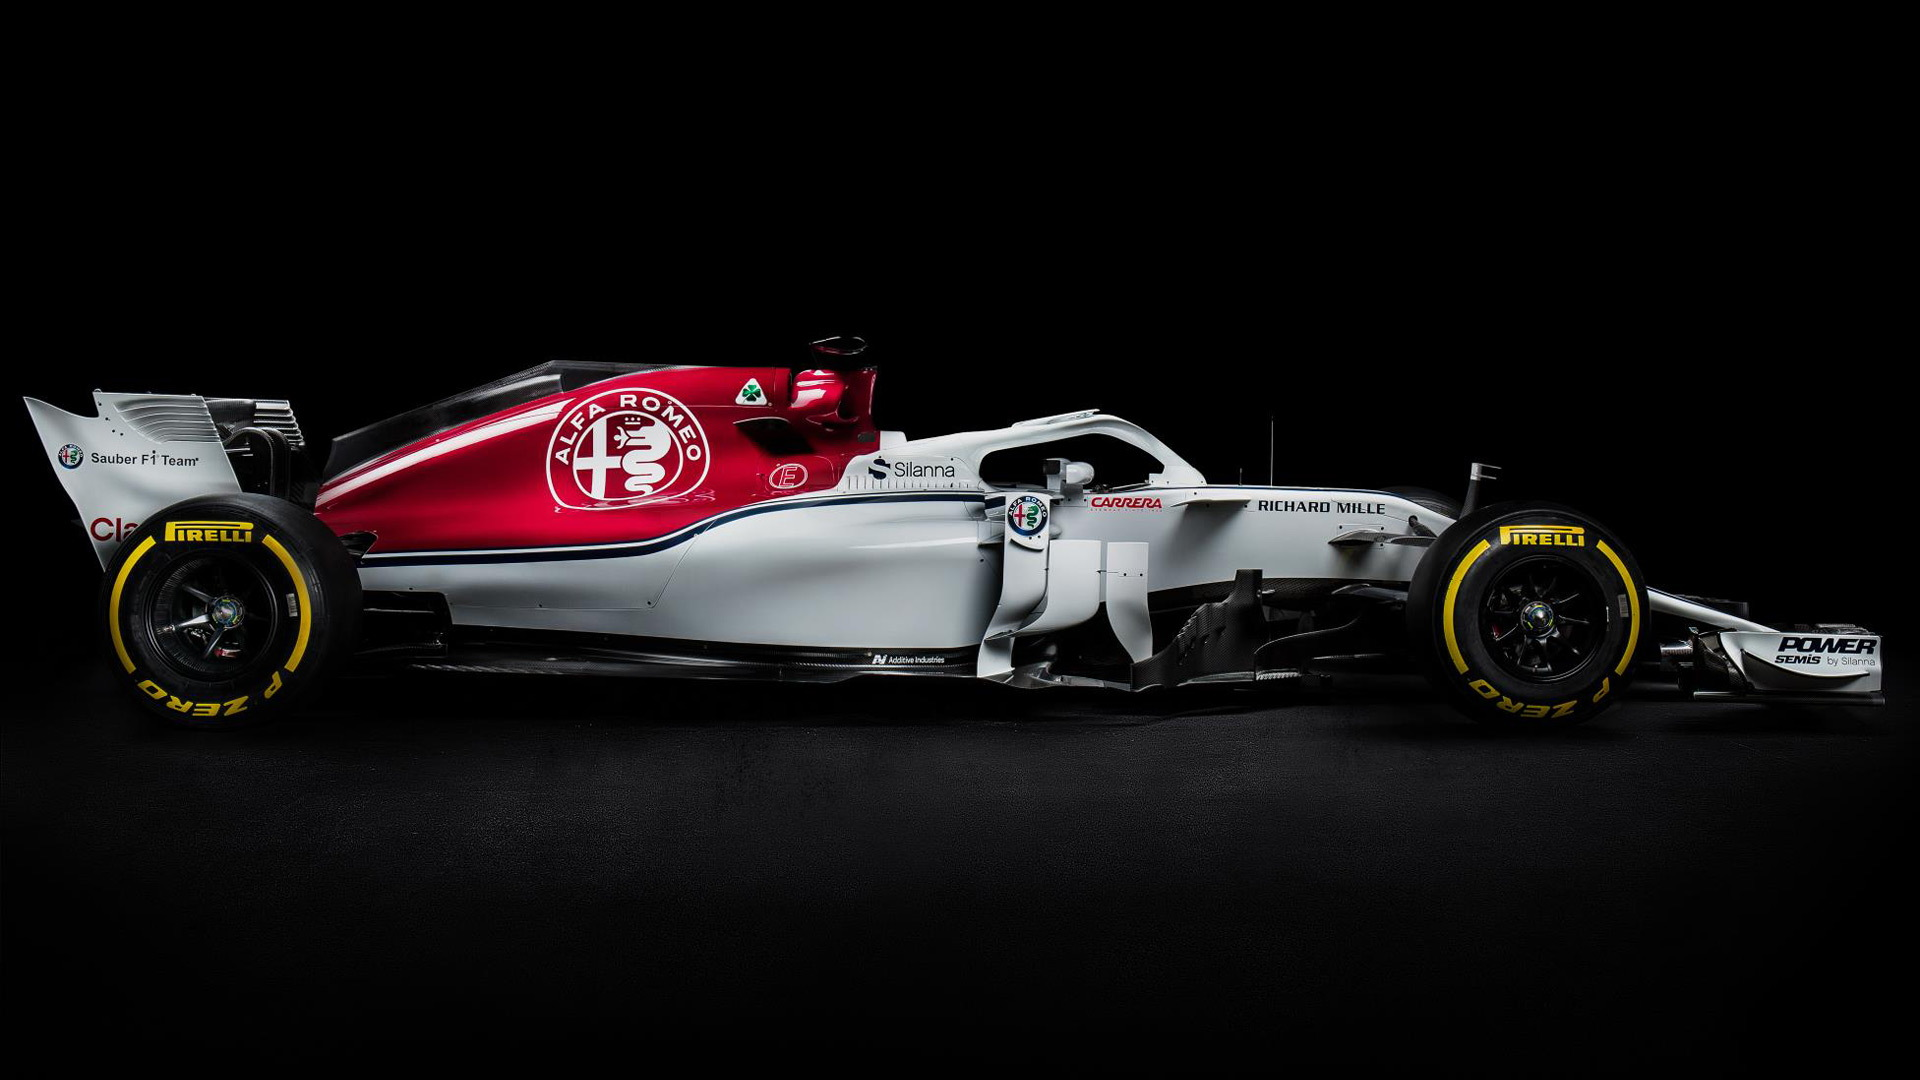 This is the Alfa Romeo-branded 2018 Sauber F1 car